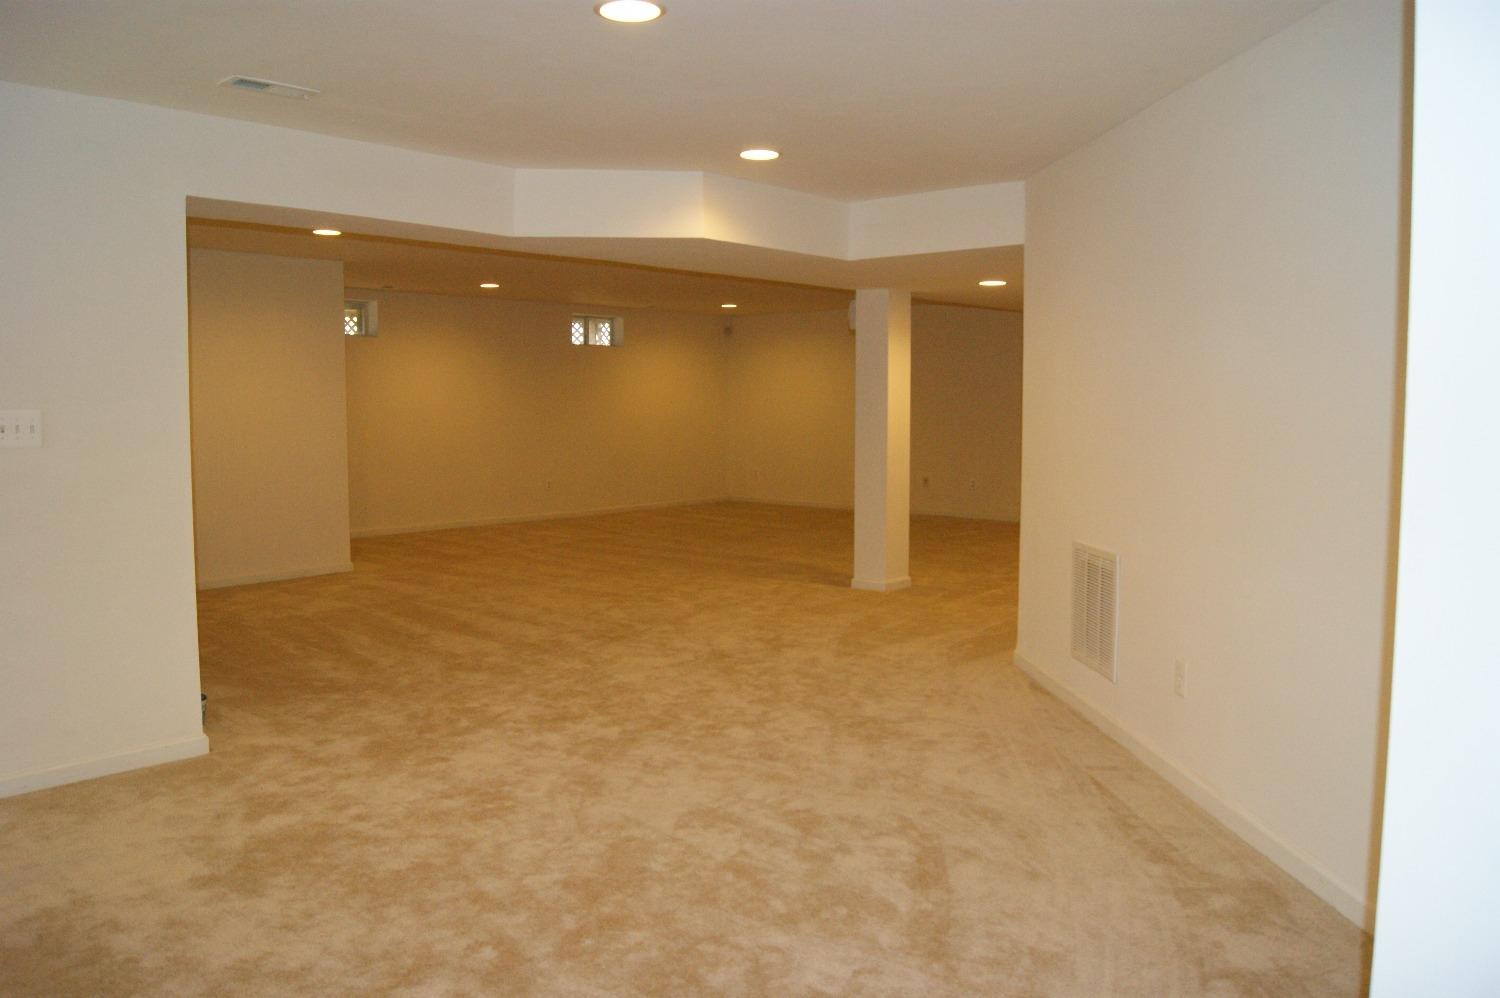 Find More Full Basement For Rent For Sale At Up To 90 Off